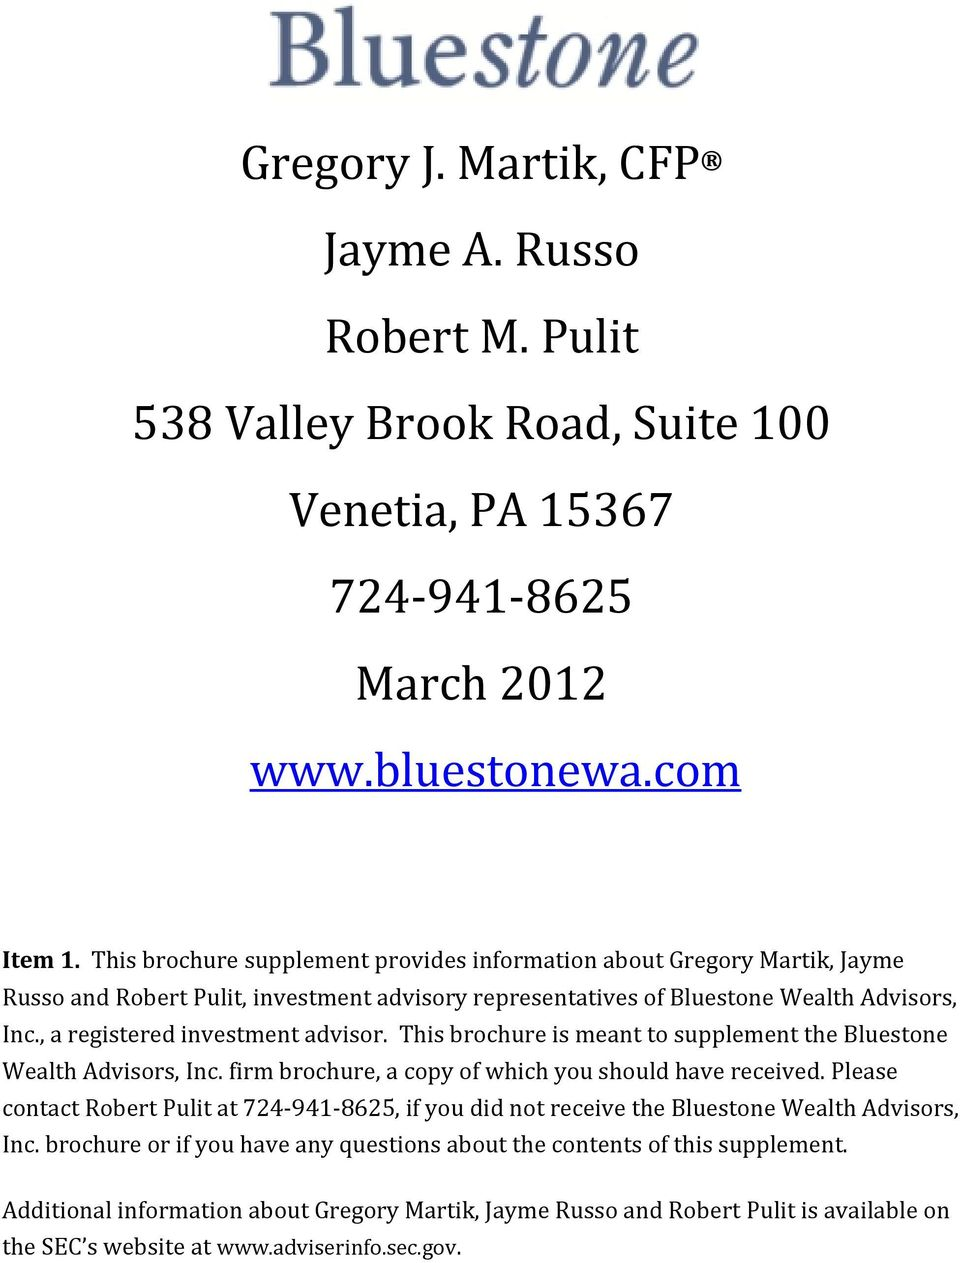 , a registered investment advisor. This brochure is meant to supplement the Bluestone Wealth Advisors, Inc. firm brochure, a copy of which you should have received.